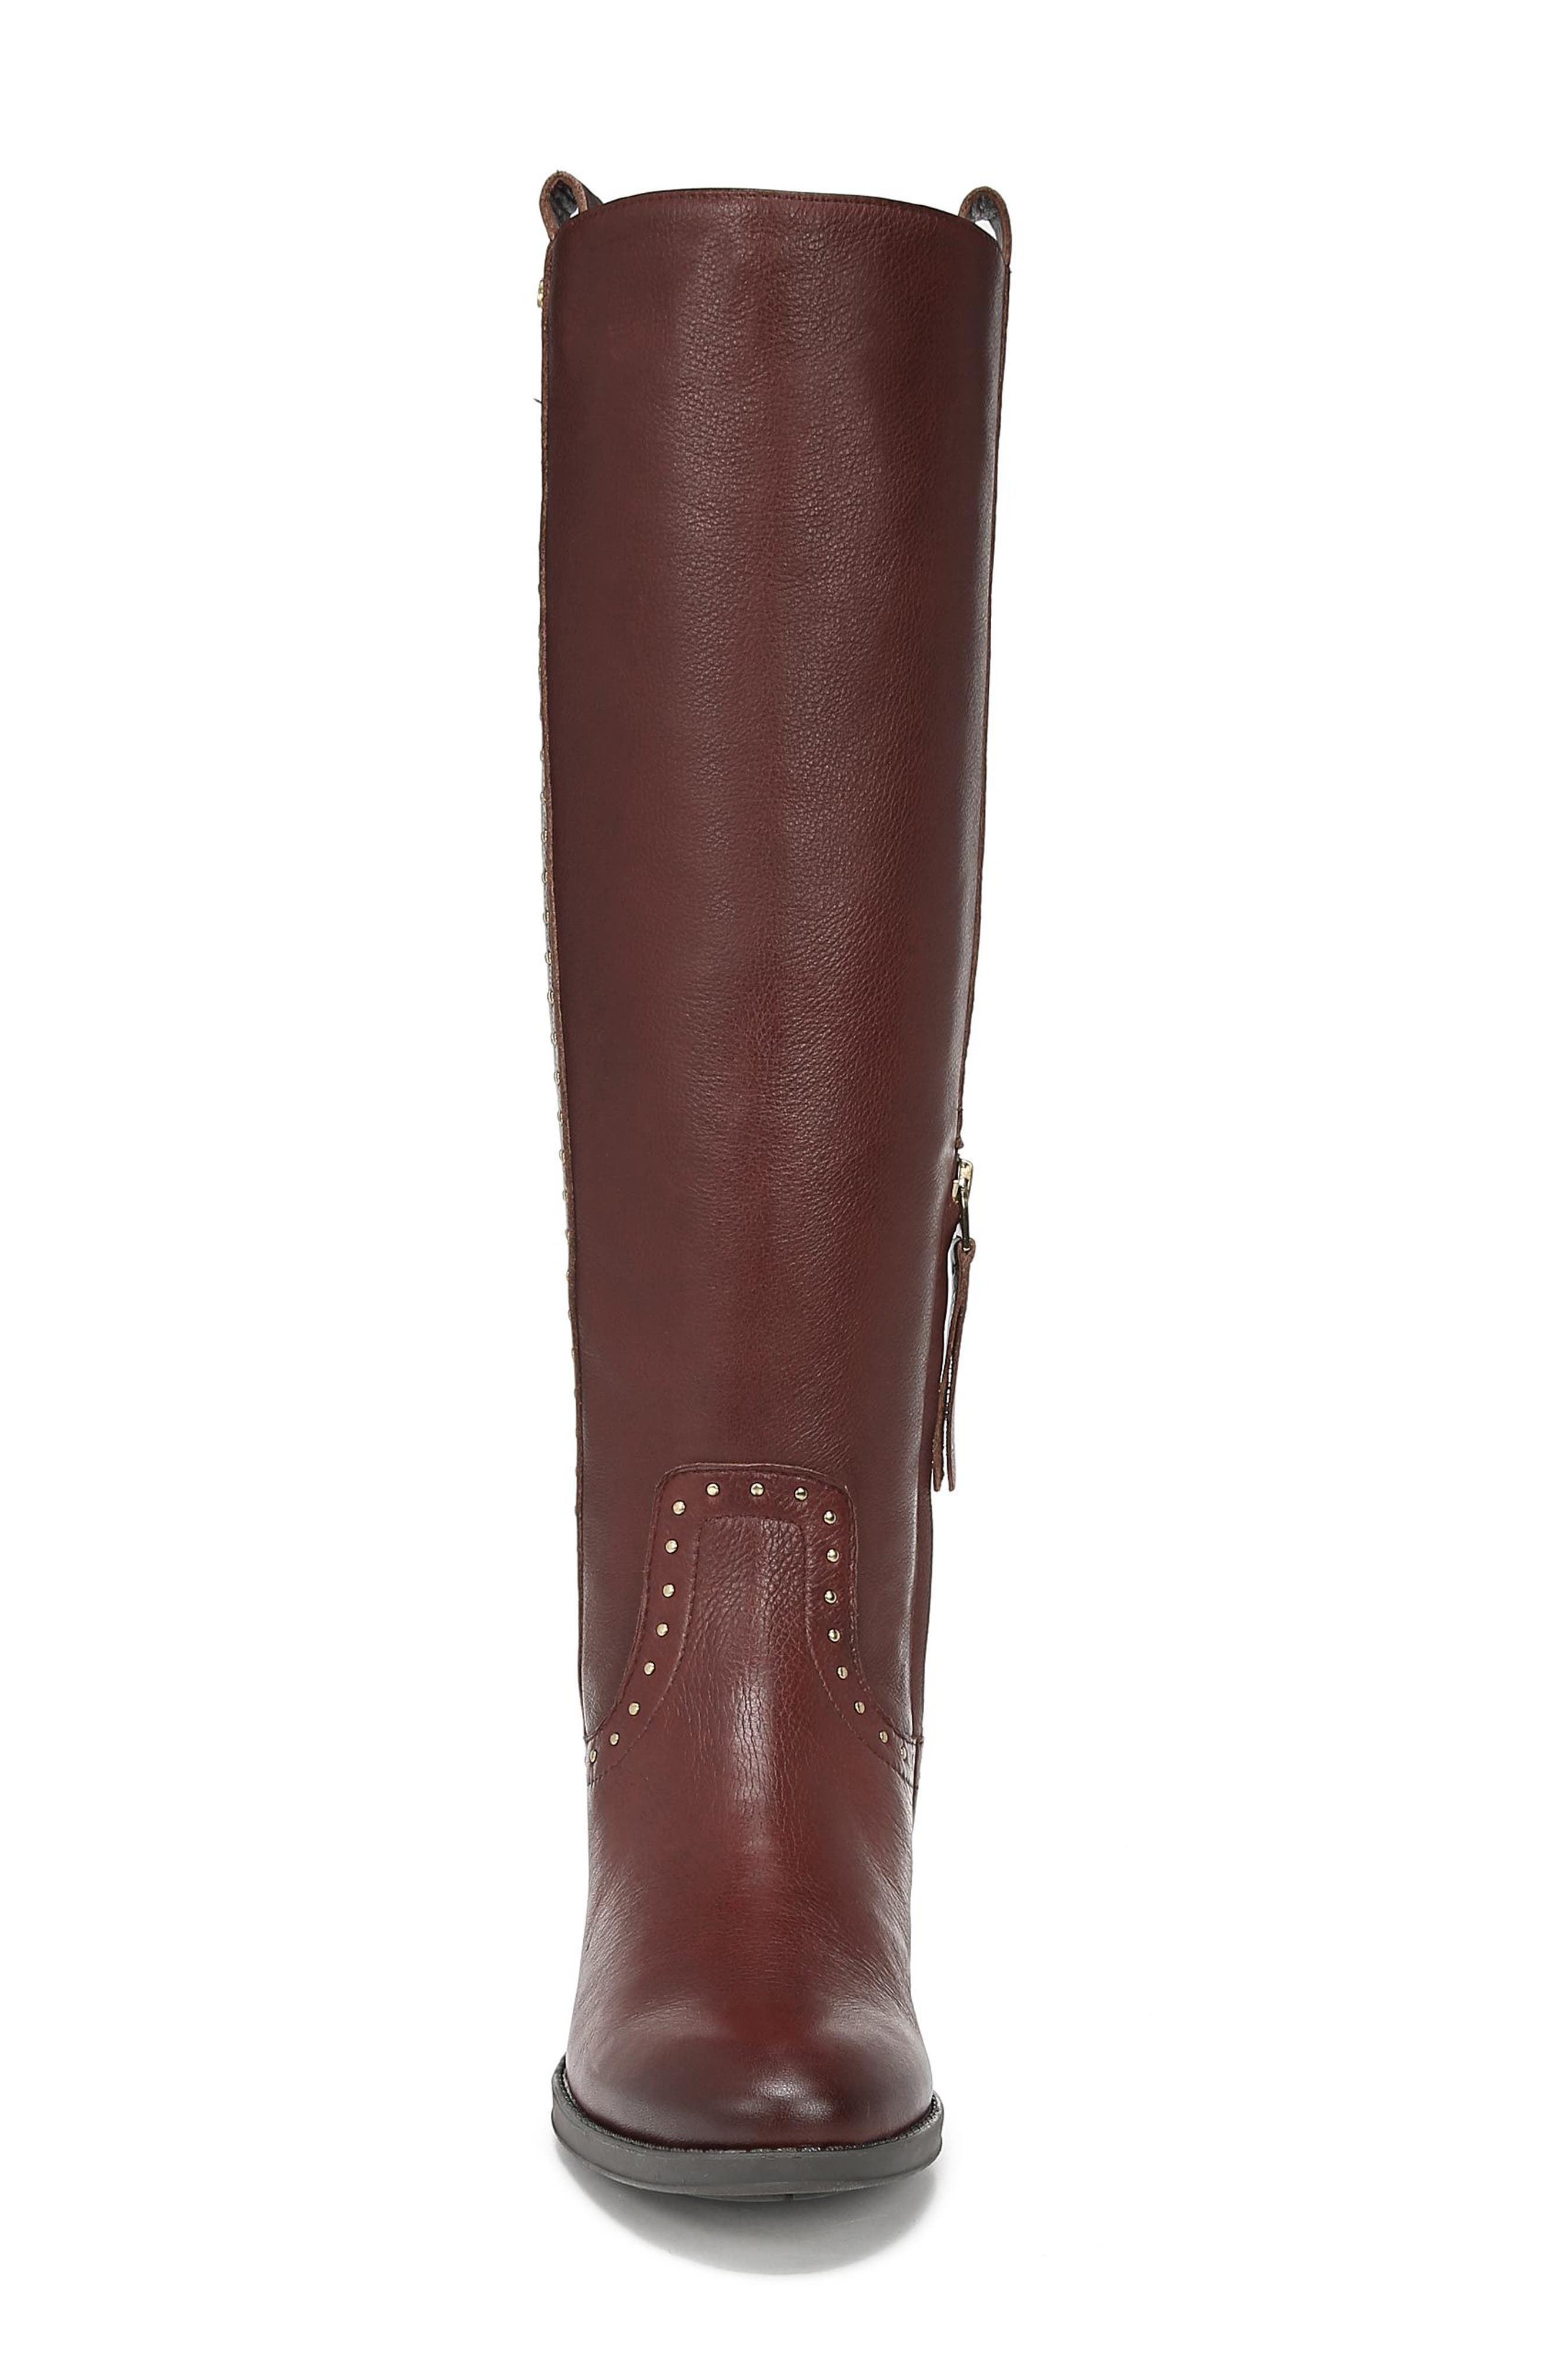 Prina Riding Boot,                             Alternate thumbnail 4, color,                             REDWOOD BROWN LEATHER